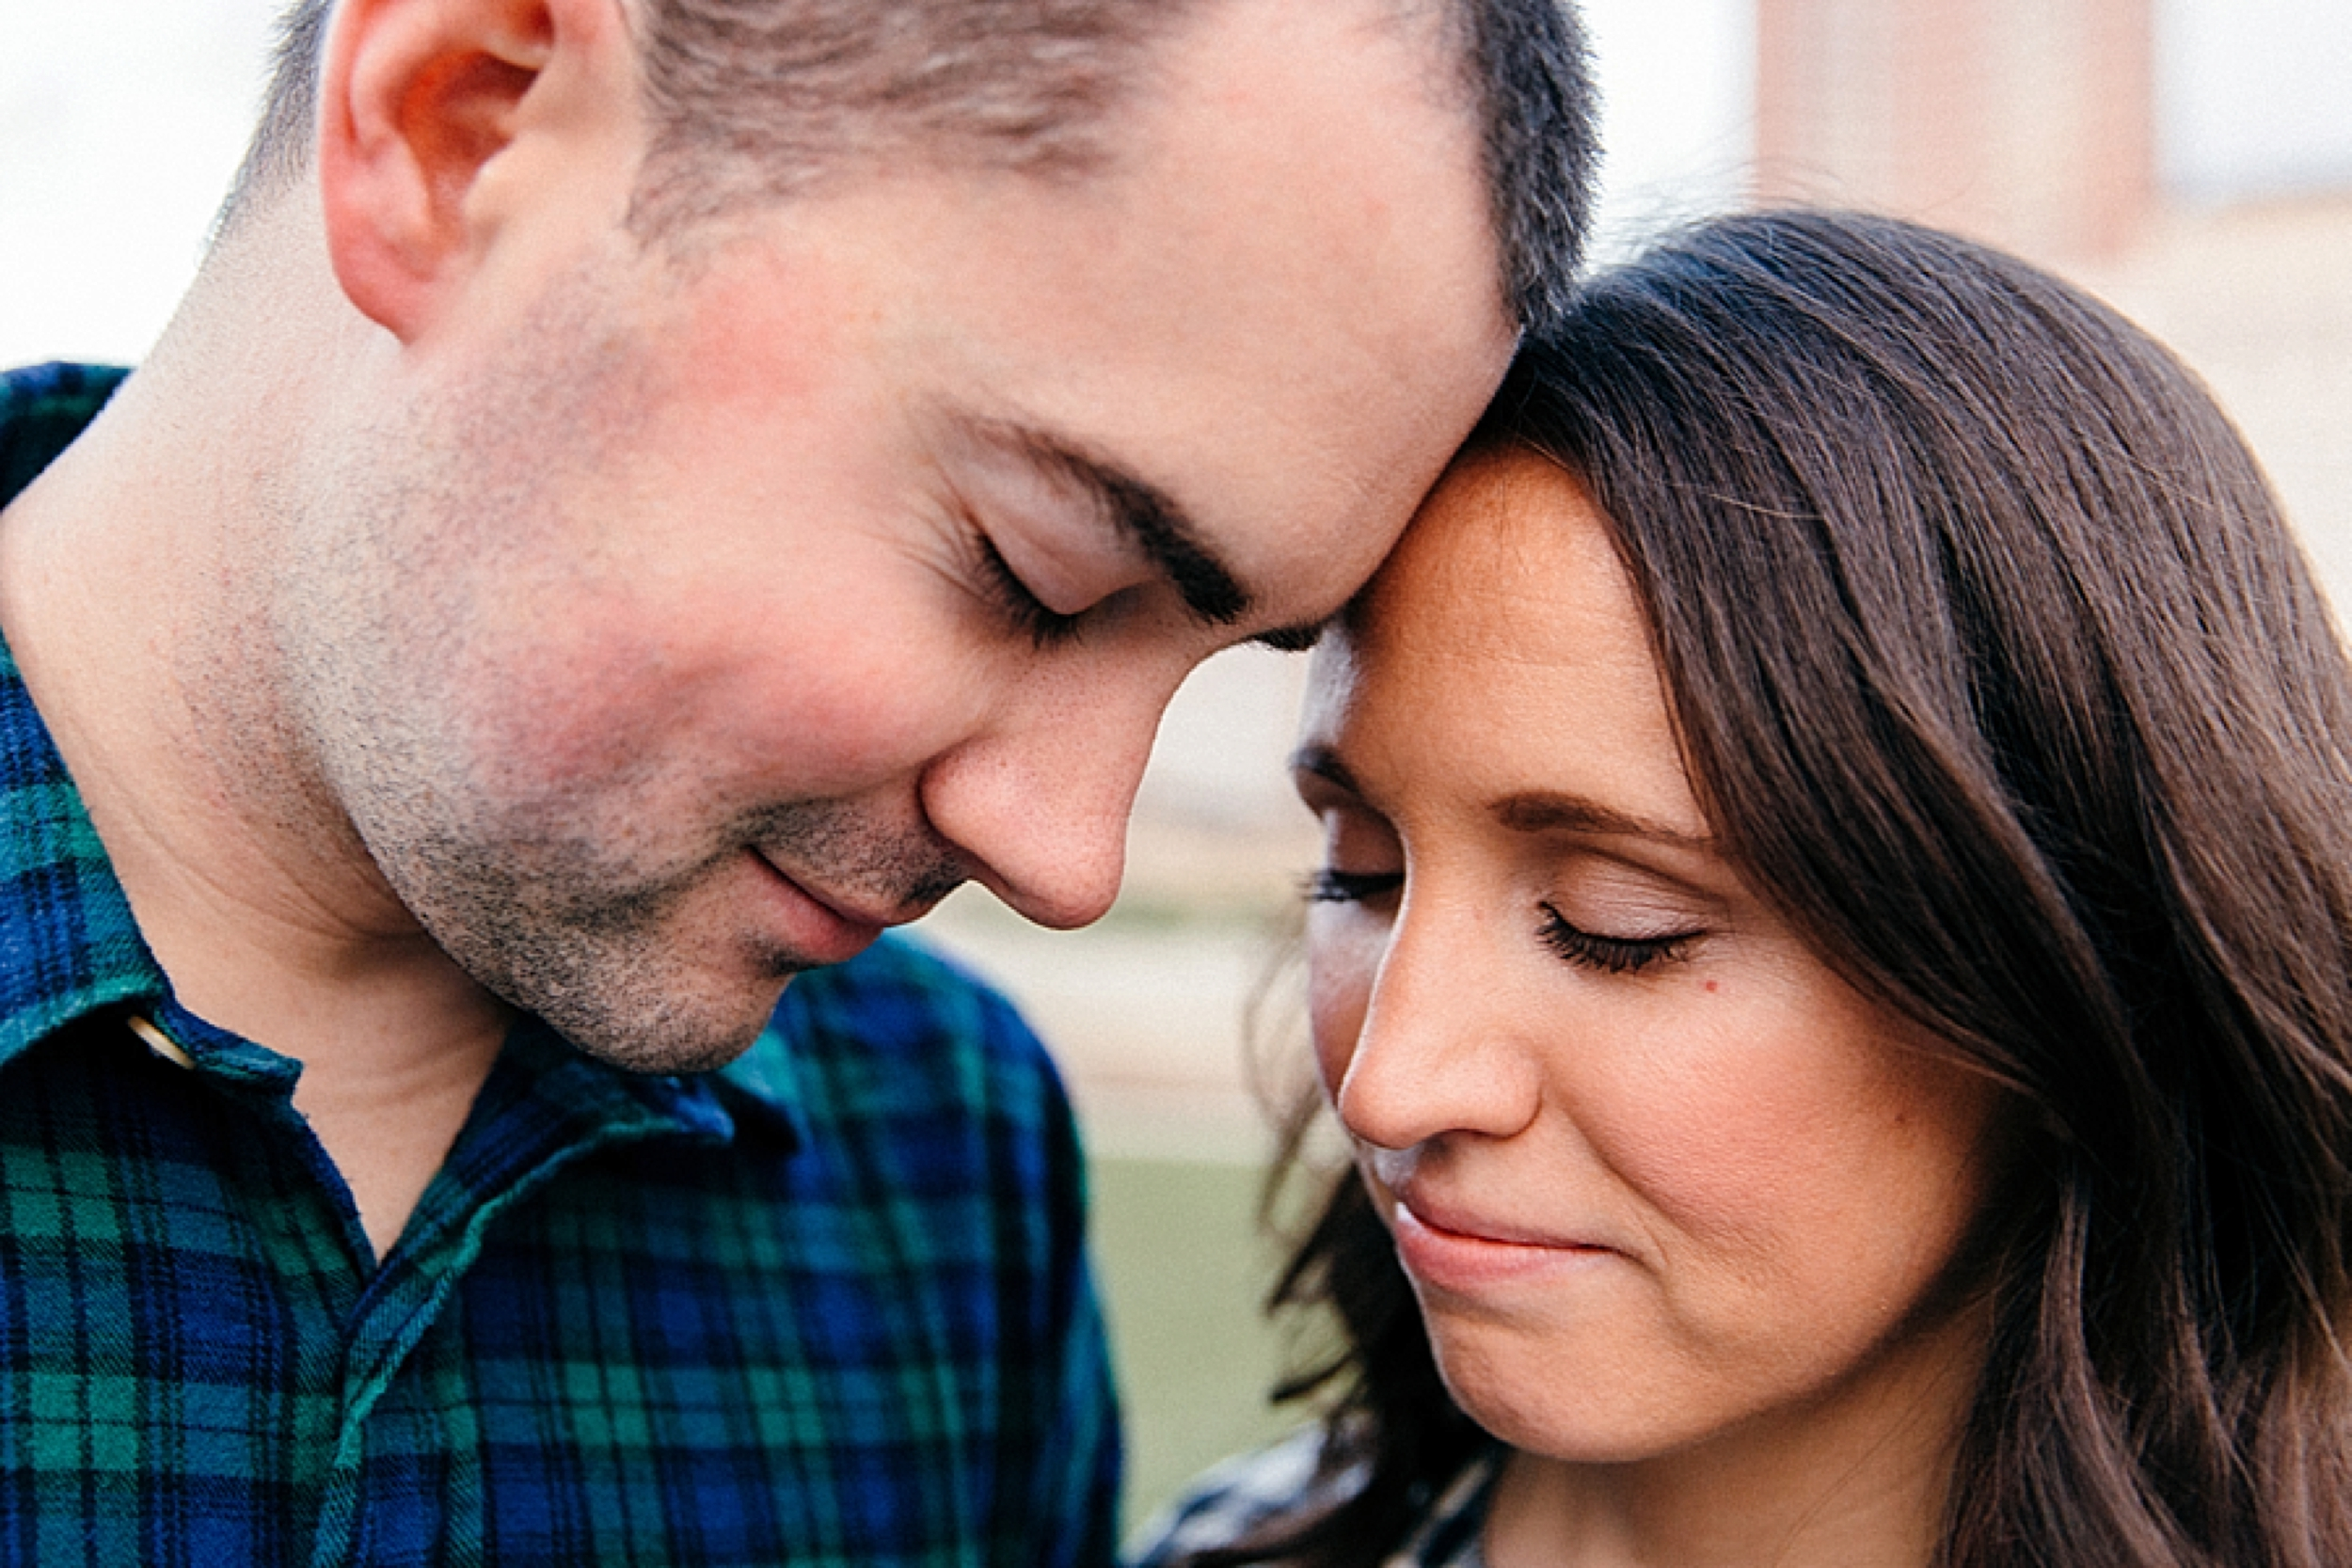 midwest-michigan-indiana-engagement-and-wedding-photographer-session-in-columbus-ohio_0011.jpg